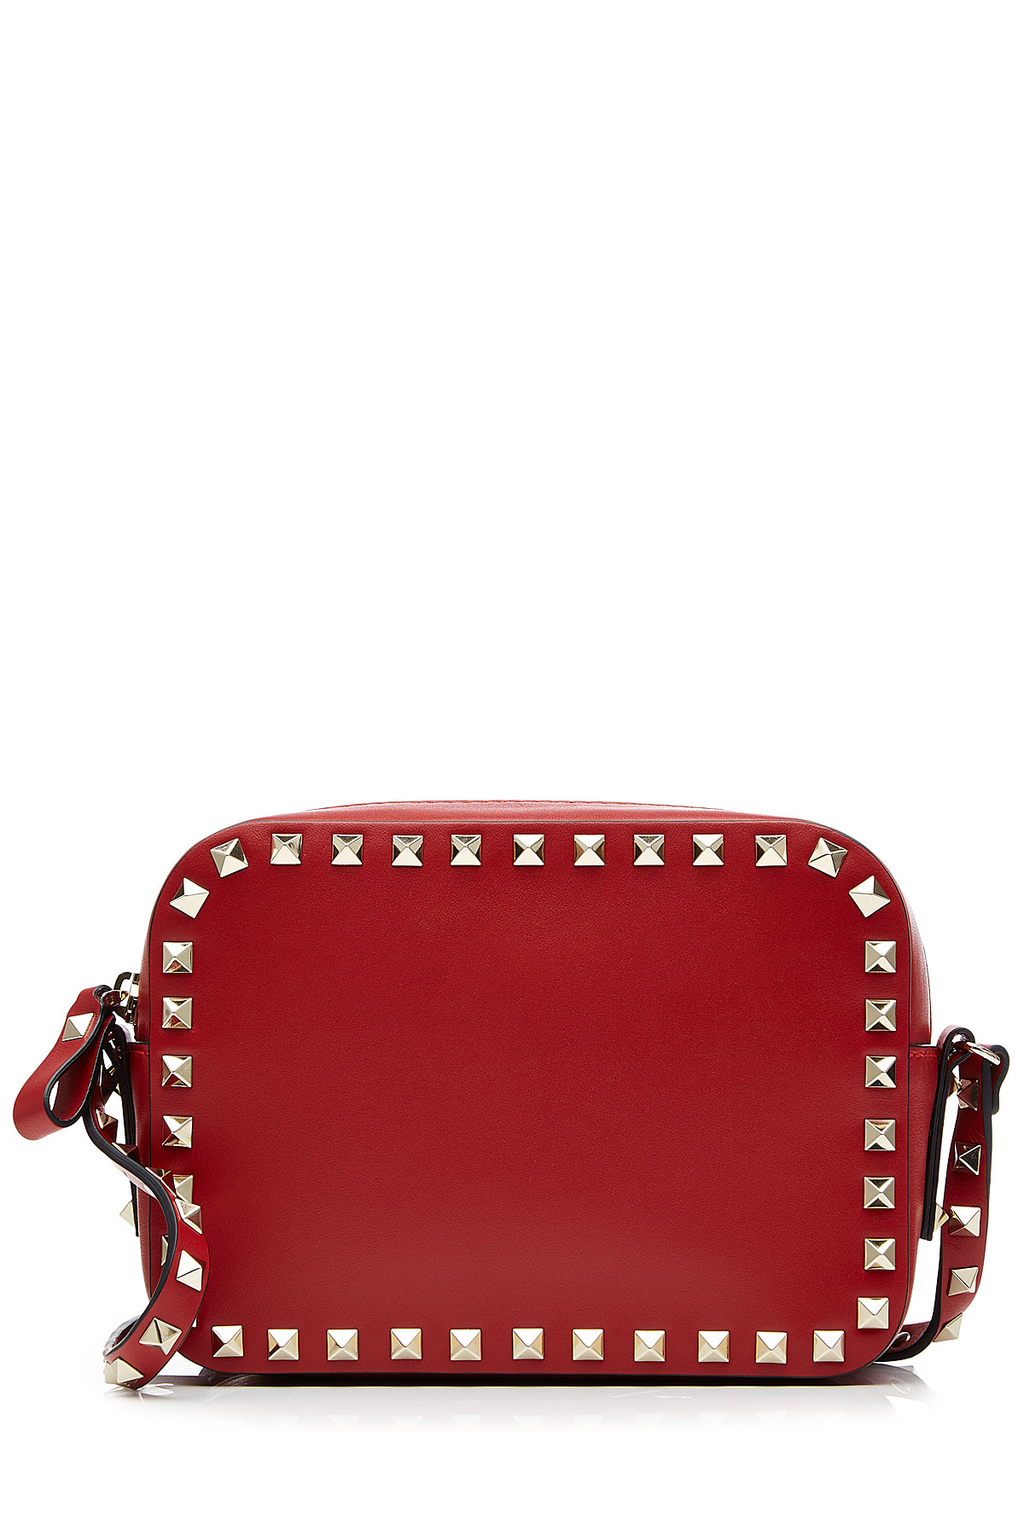 Rockstud Leather Camera Bag Red - predominant colour: true red; secondary colour: gold; type of pattern: standard; style: messenger; length: across body/long; size: mini; material: leather; embellishment: studs; pattern: plain; finish: plain; occasions: creative work; season: s/s 2016; wardrobe: highlight